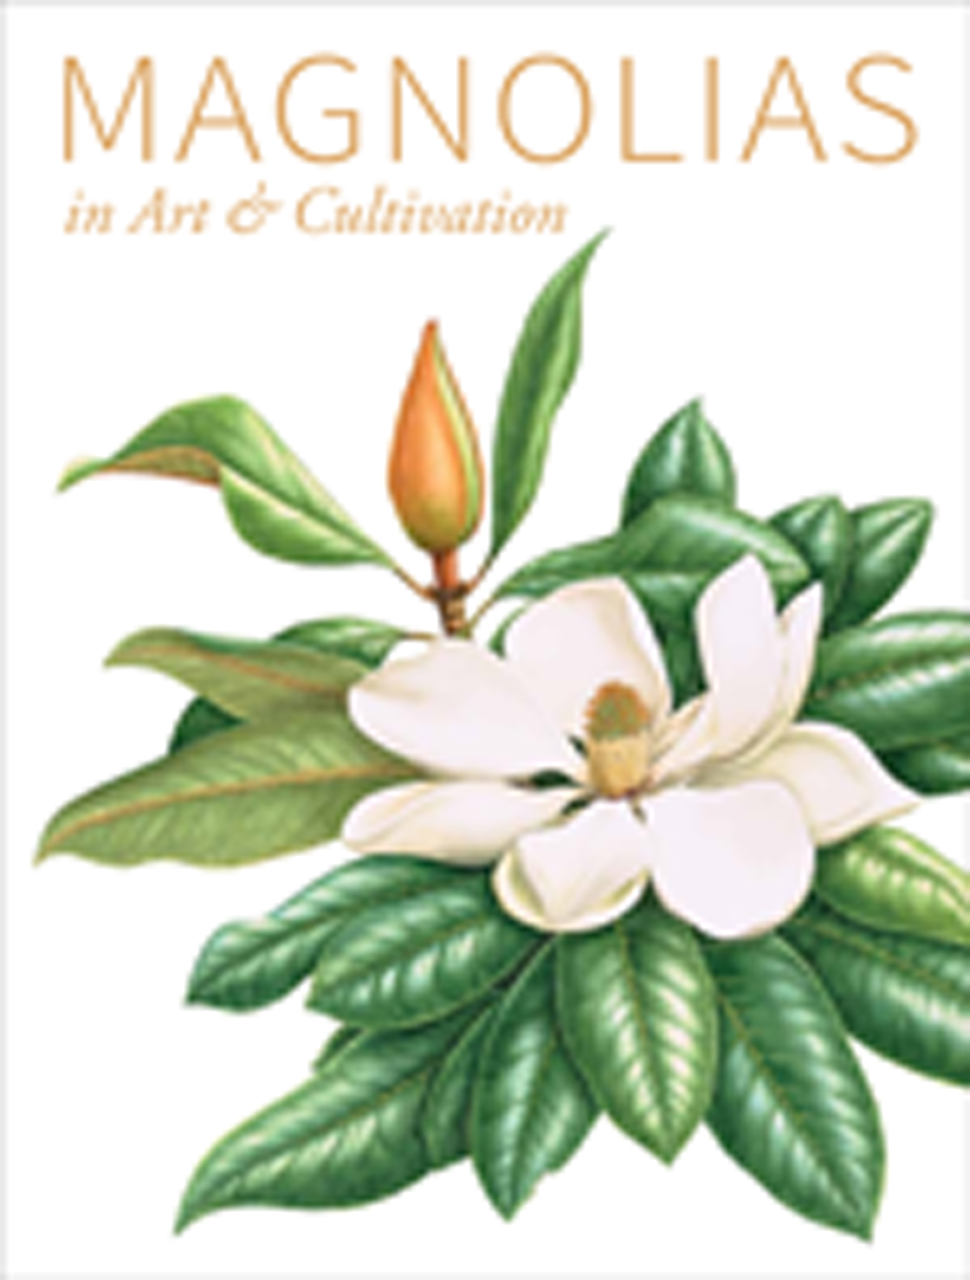 Magnolias in Art and Cultivation